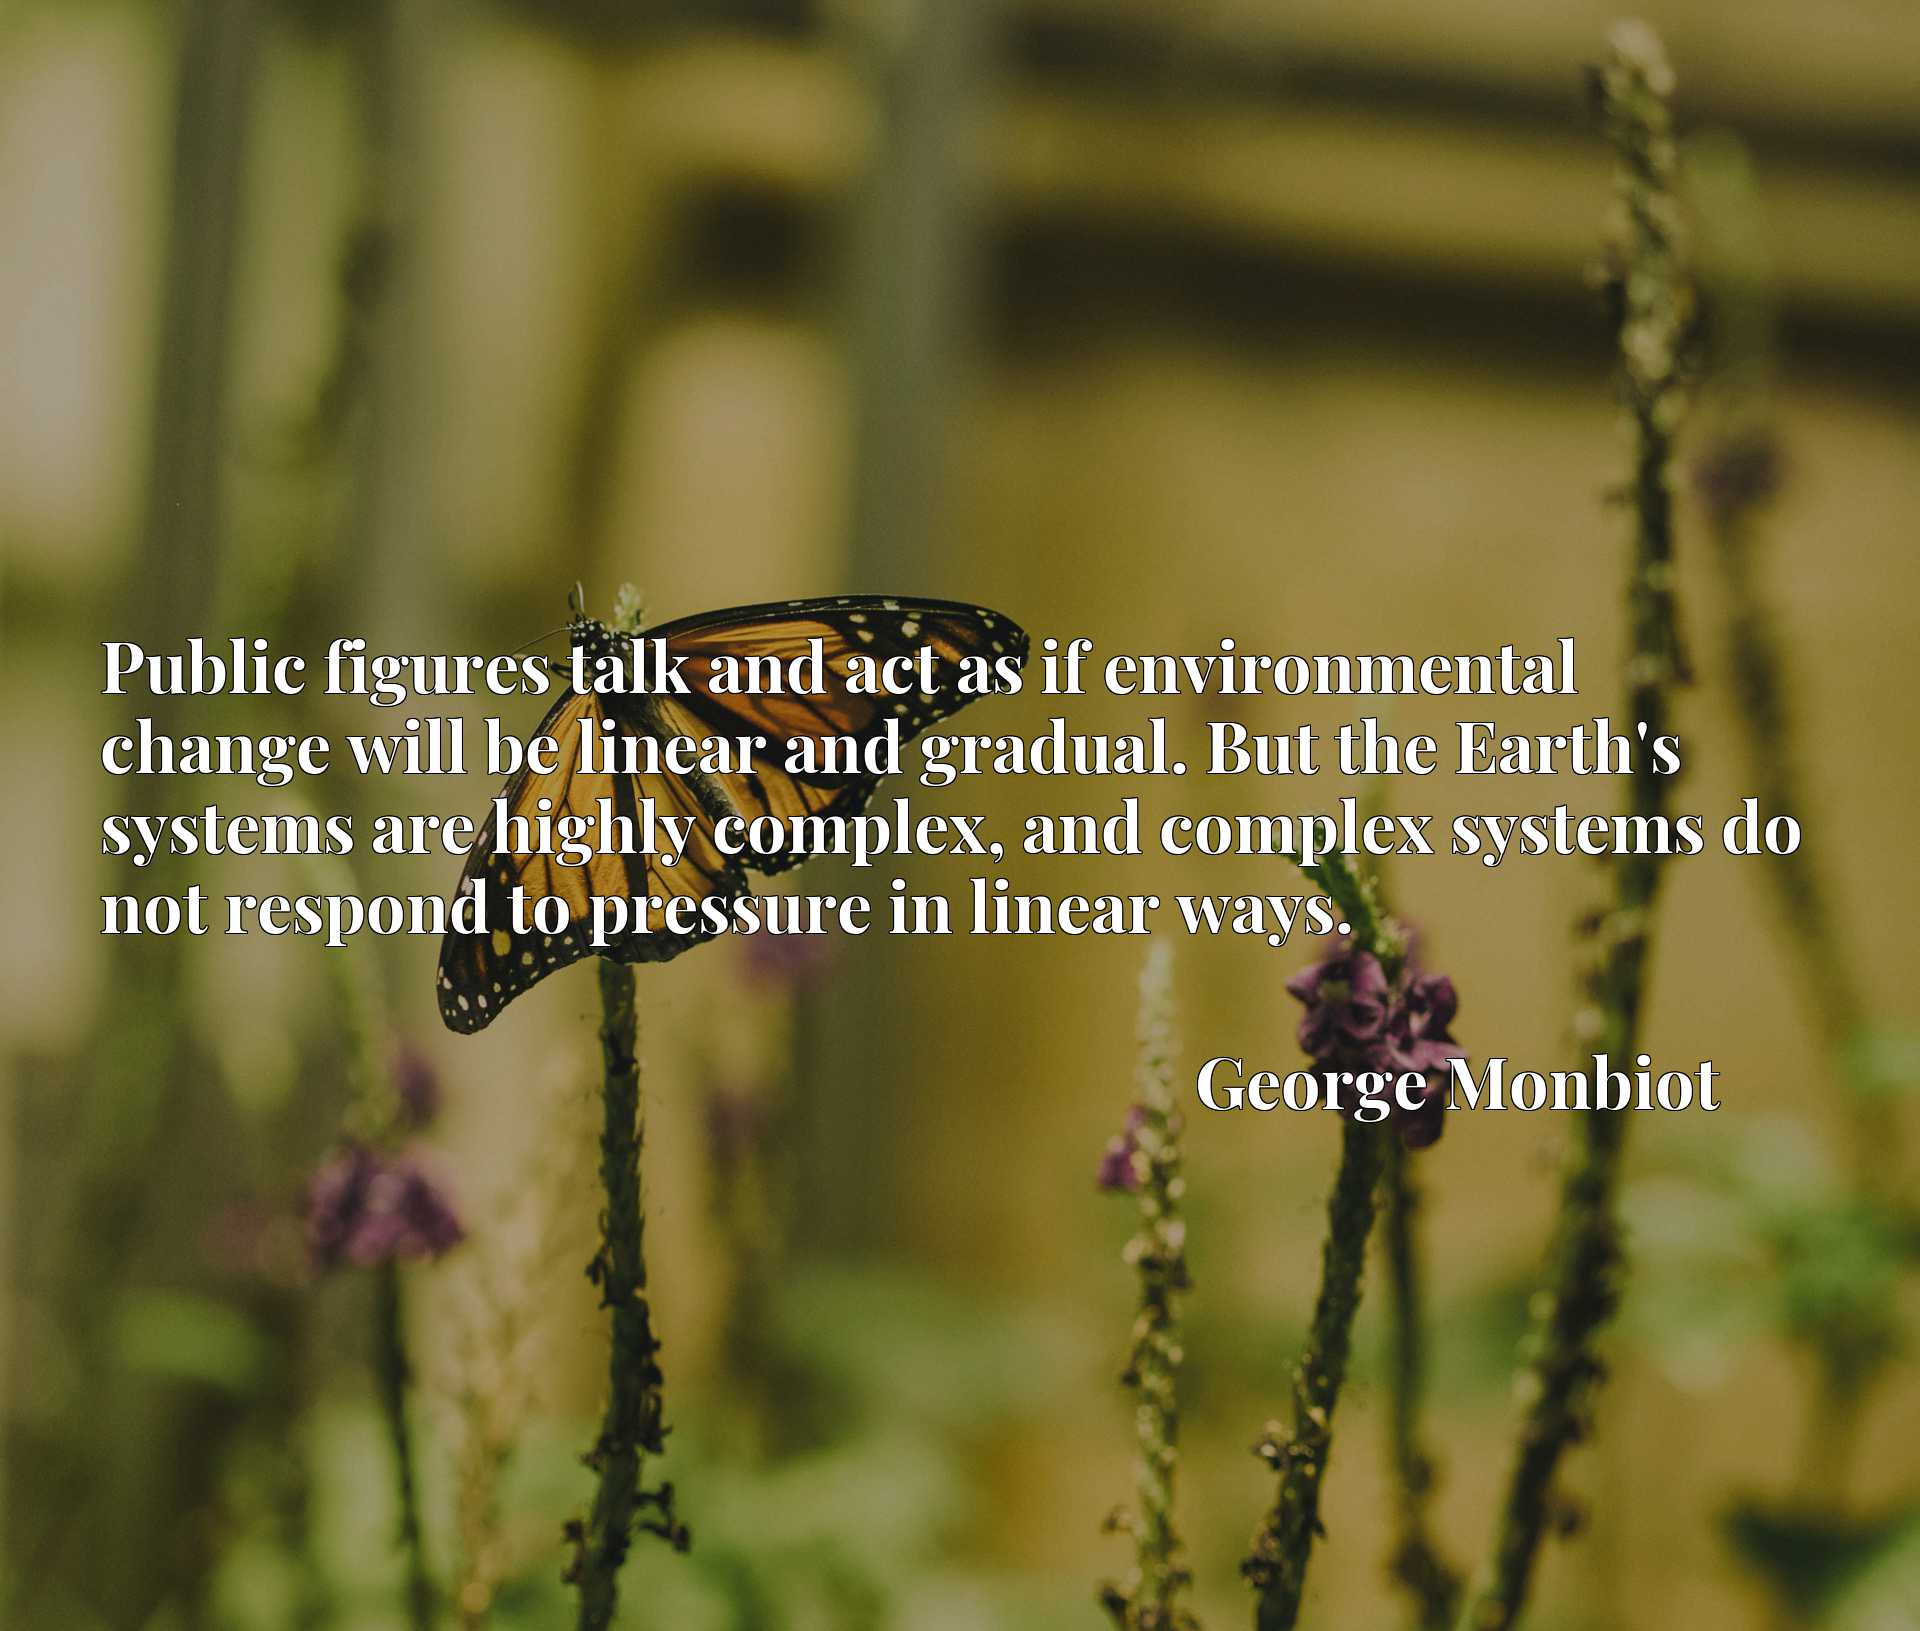 Public figures talk and act as if environmental change will be linear and gradual. But the Earth's systems are highly complex, and complex systems do not respond to pressure in linear ways.